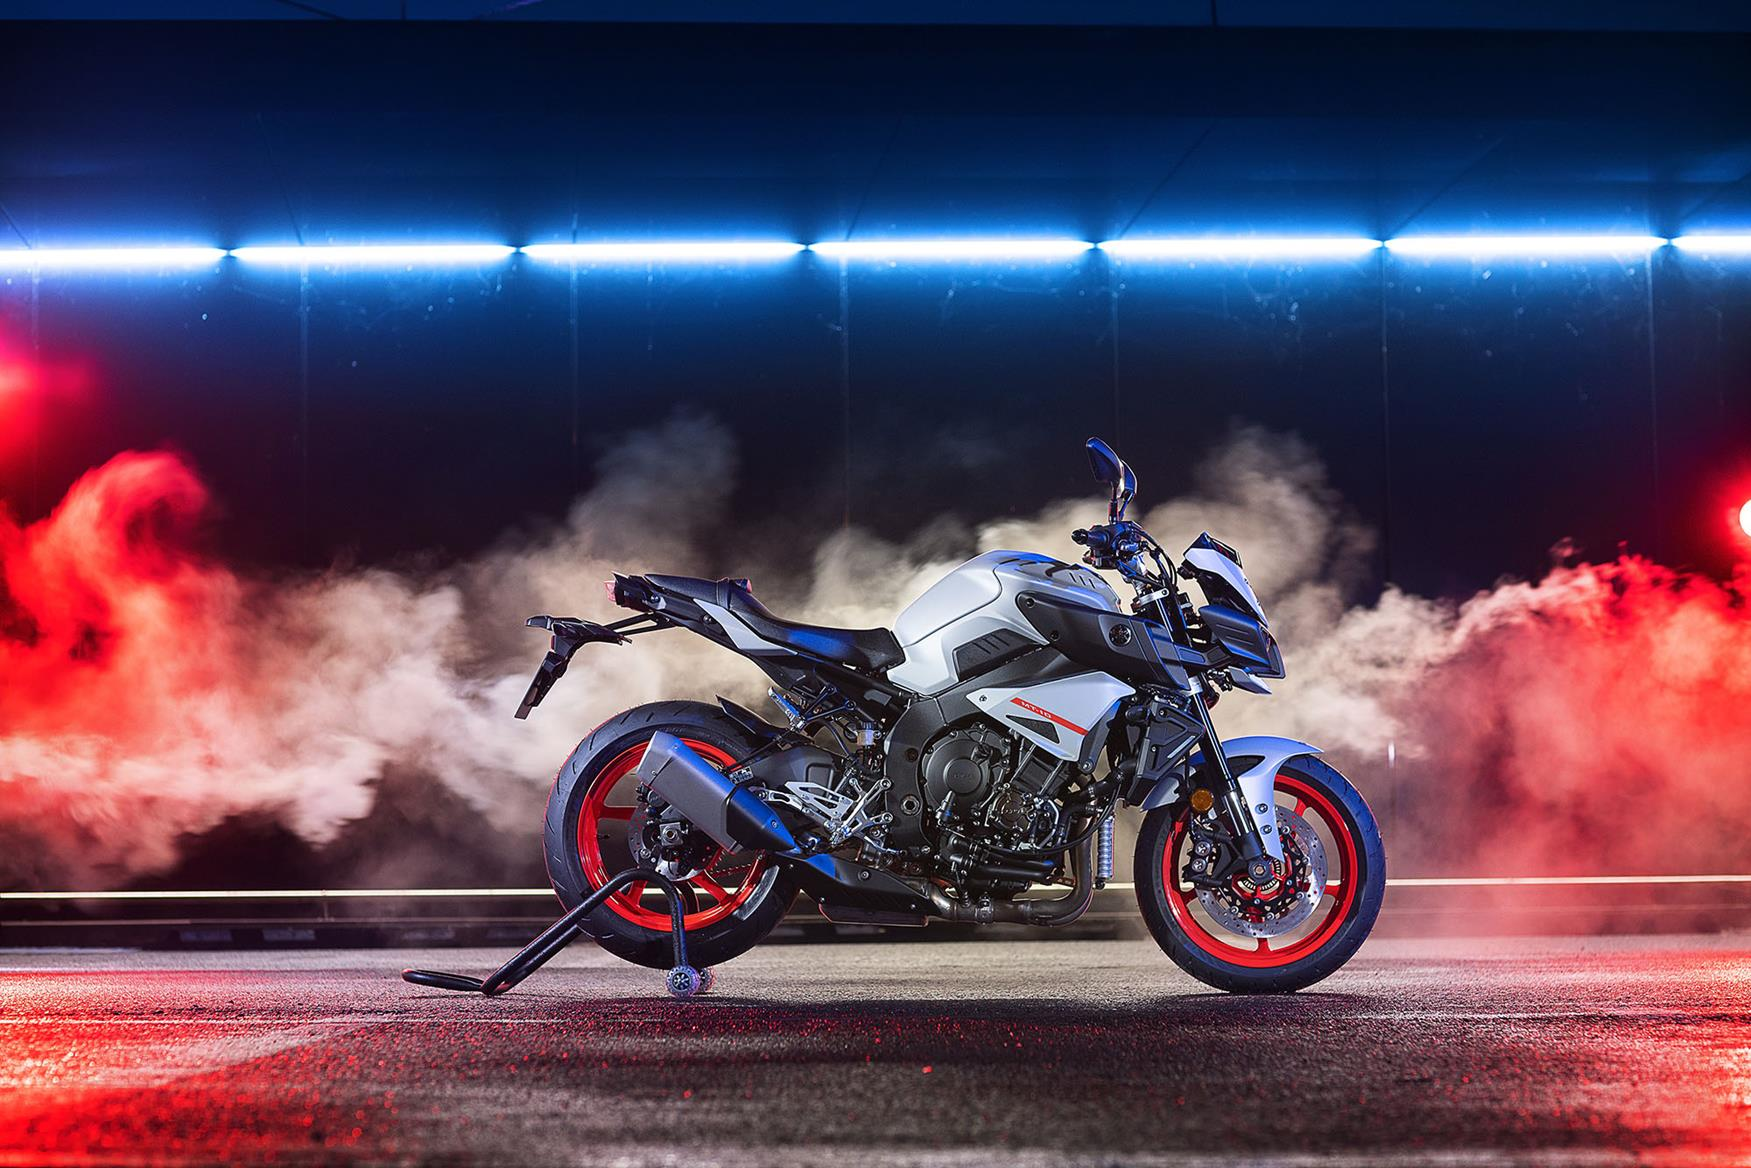 2019 Yamaha MT-10 in Ice Fluo paint